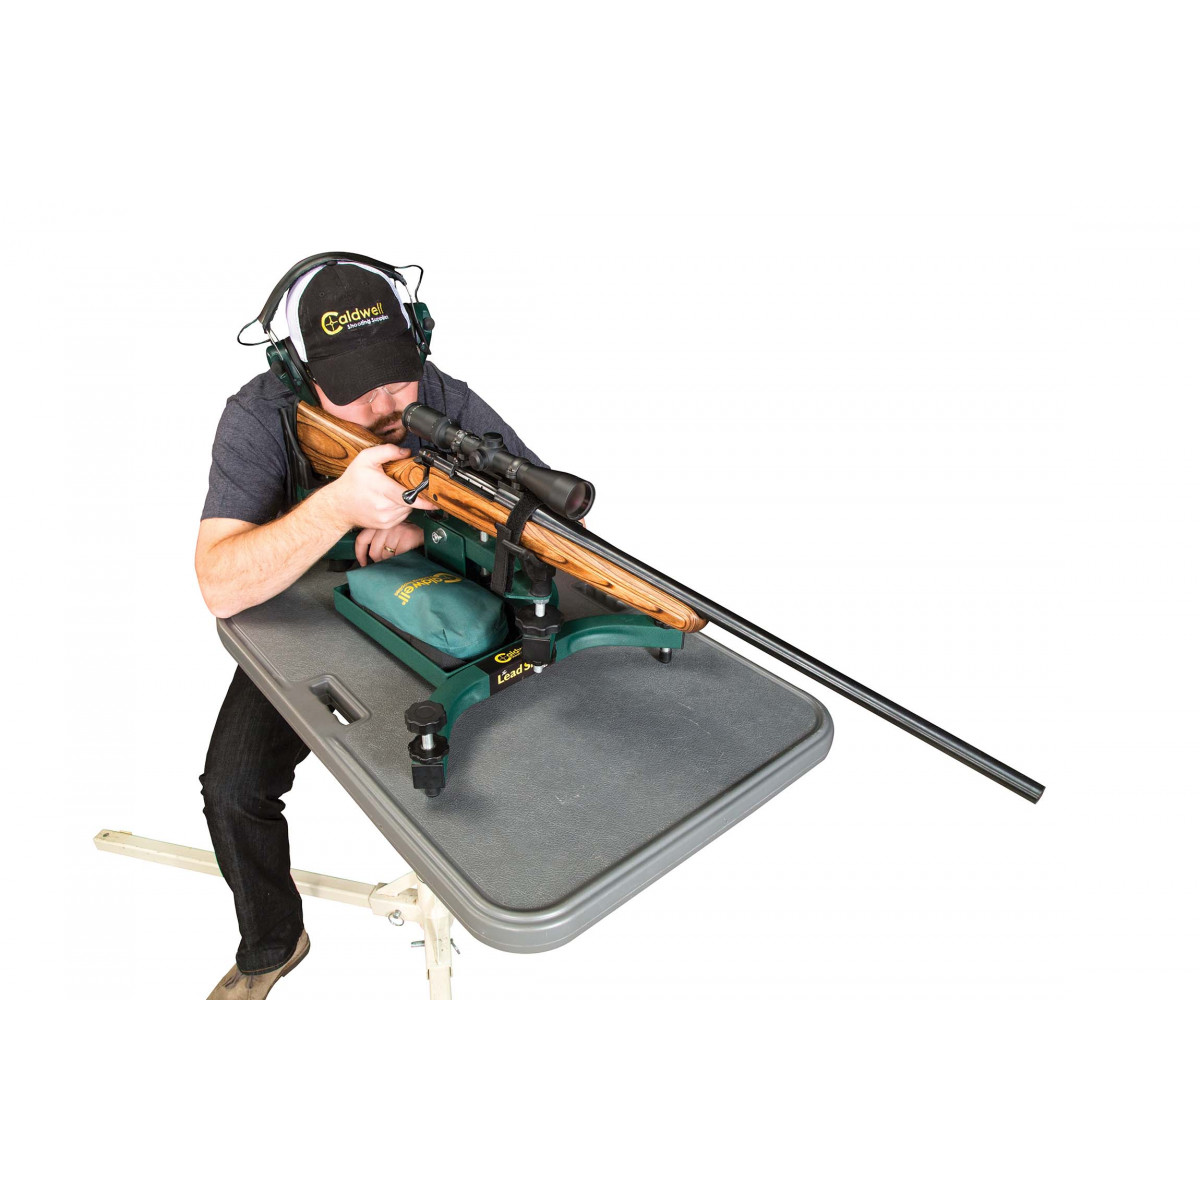 Caldwell Lead Sled Solo Adjustable Recoil Reducing Rifle Shooting Rest for Outdoor Range Renewed 101777